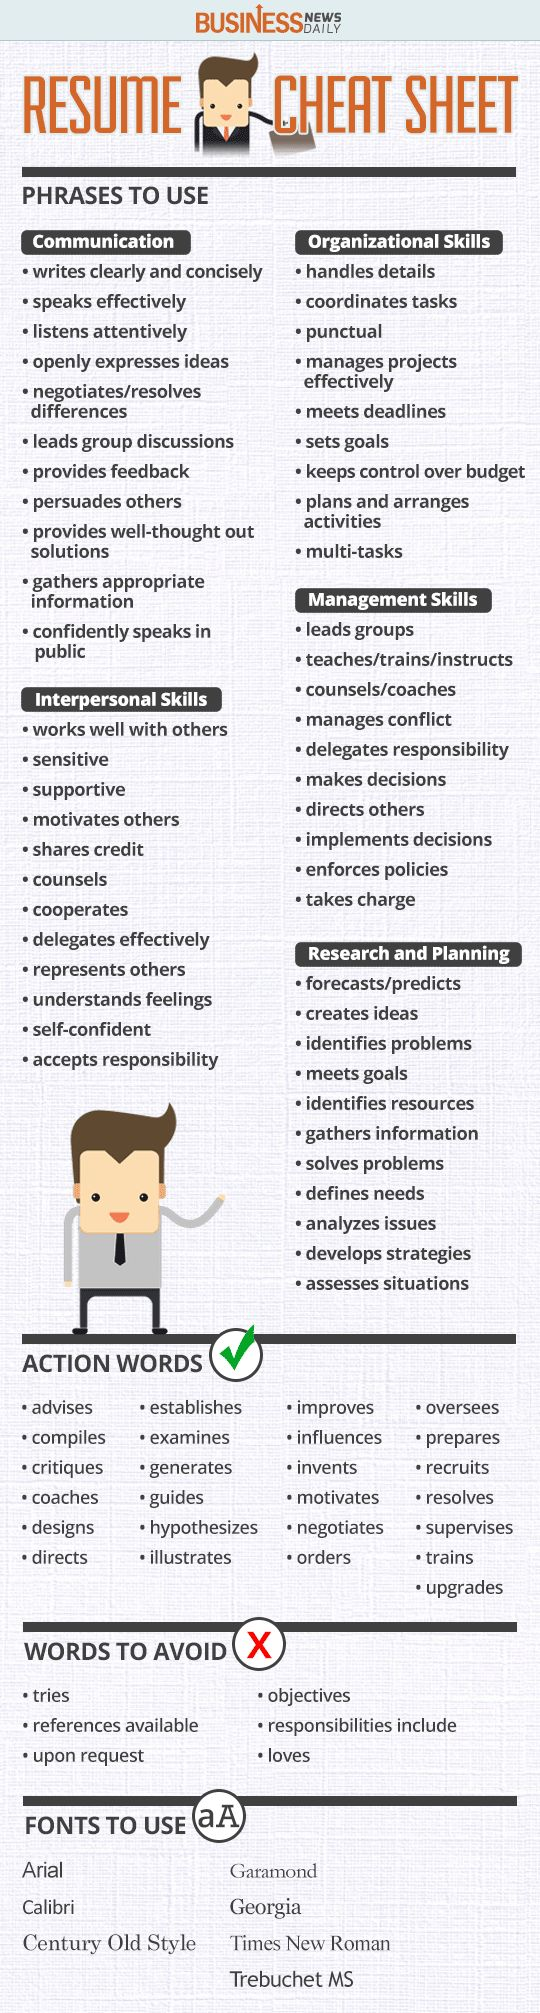 Opposenewapstandardsus  Outstanding  Ideas About Resume On Pinterest  Cv Format Resume Cv And  With Outstanding Resume Cheat Sheet Infographic Andrews Almost Done With A Complete Unit On Employment Which With Beauteous Test Engineer Resume Also Musical Resume In Addition Restaurant Hostess Resume And Free Resume Templates Google Docs As Well As Quick Resume Builder Free Additionally Medical Billing Resume Sample From Pinterestcom With Opposenewapstandardsus  Outstanding  Ideas About Resume On Pinterest  Cv Format Resume Cv And  With Beauteous Resume Cheat Sheet Infographic Andrews Almost Done With A Complete Unit On Employment Which And Outstanding Test Engineer Resume Also Musical Resume In Addition Restaurant Hostess Resume From Pinterestcom